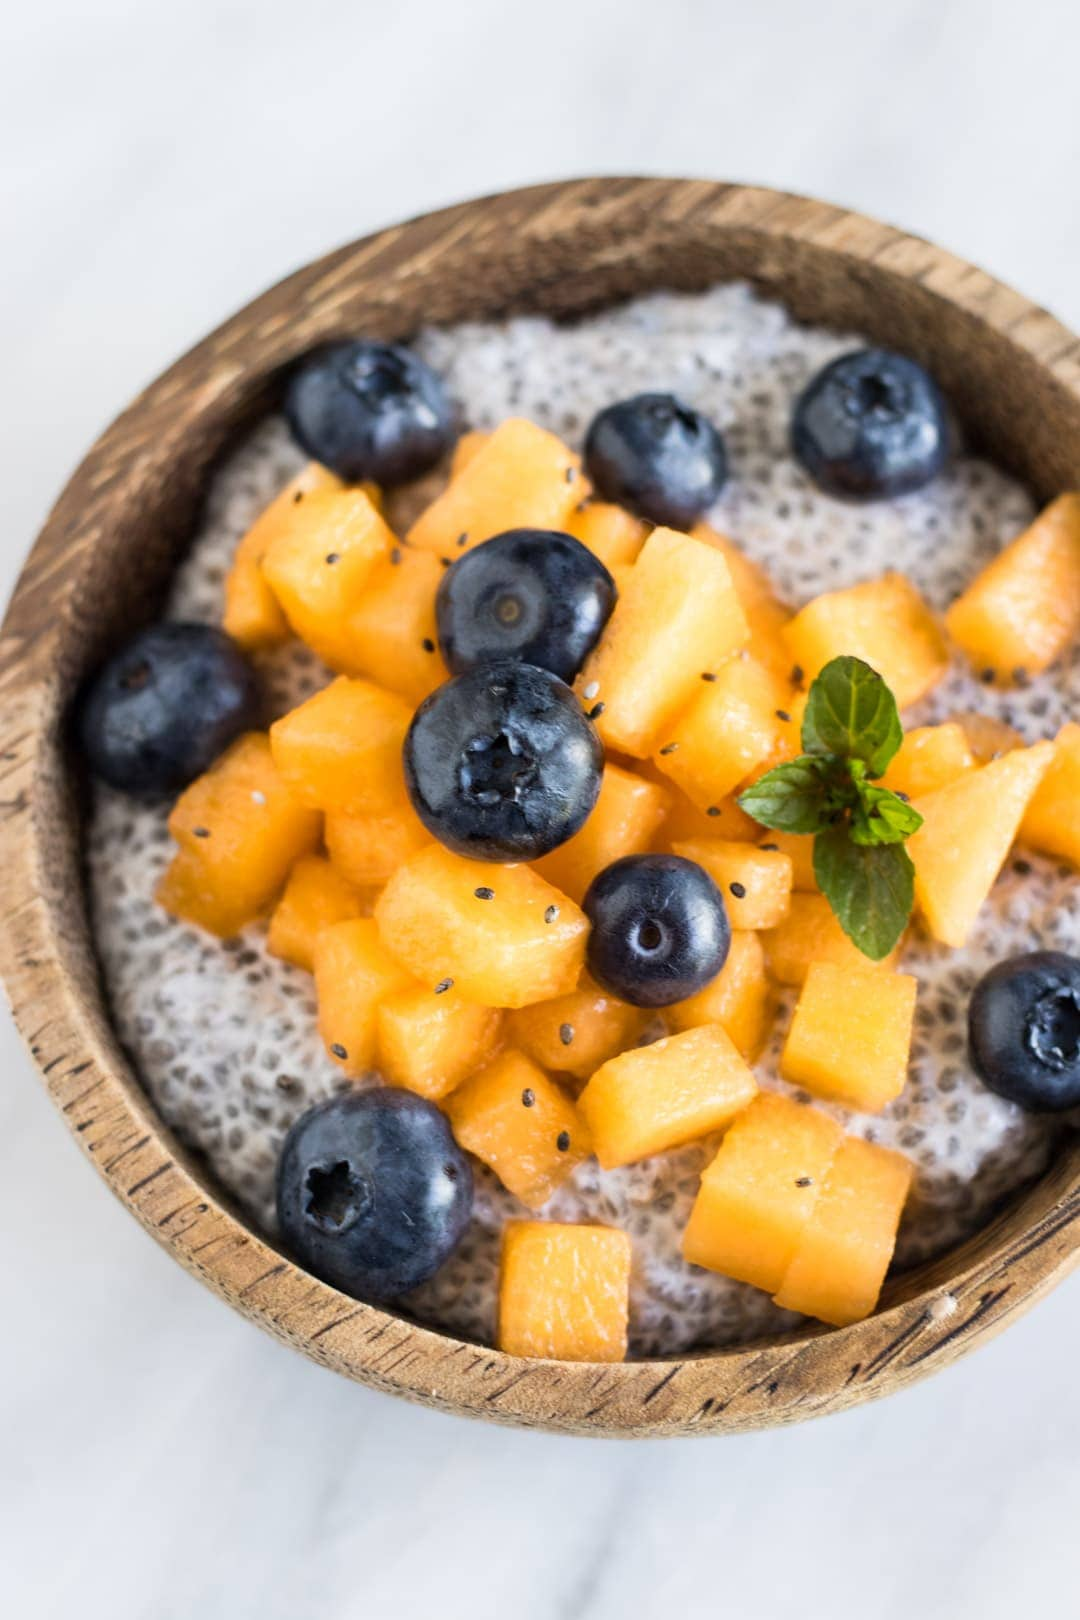 A bowl of chia pudding topped with diced cantaloupe, blueberries, and small mint leaves.